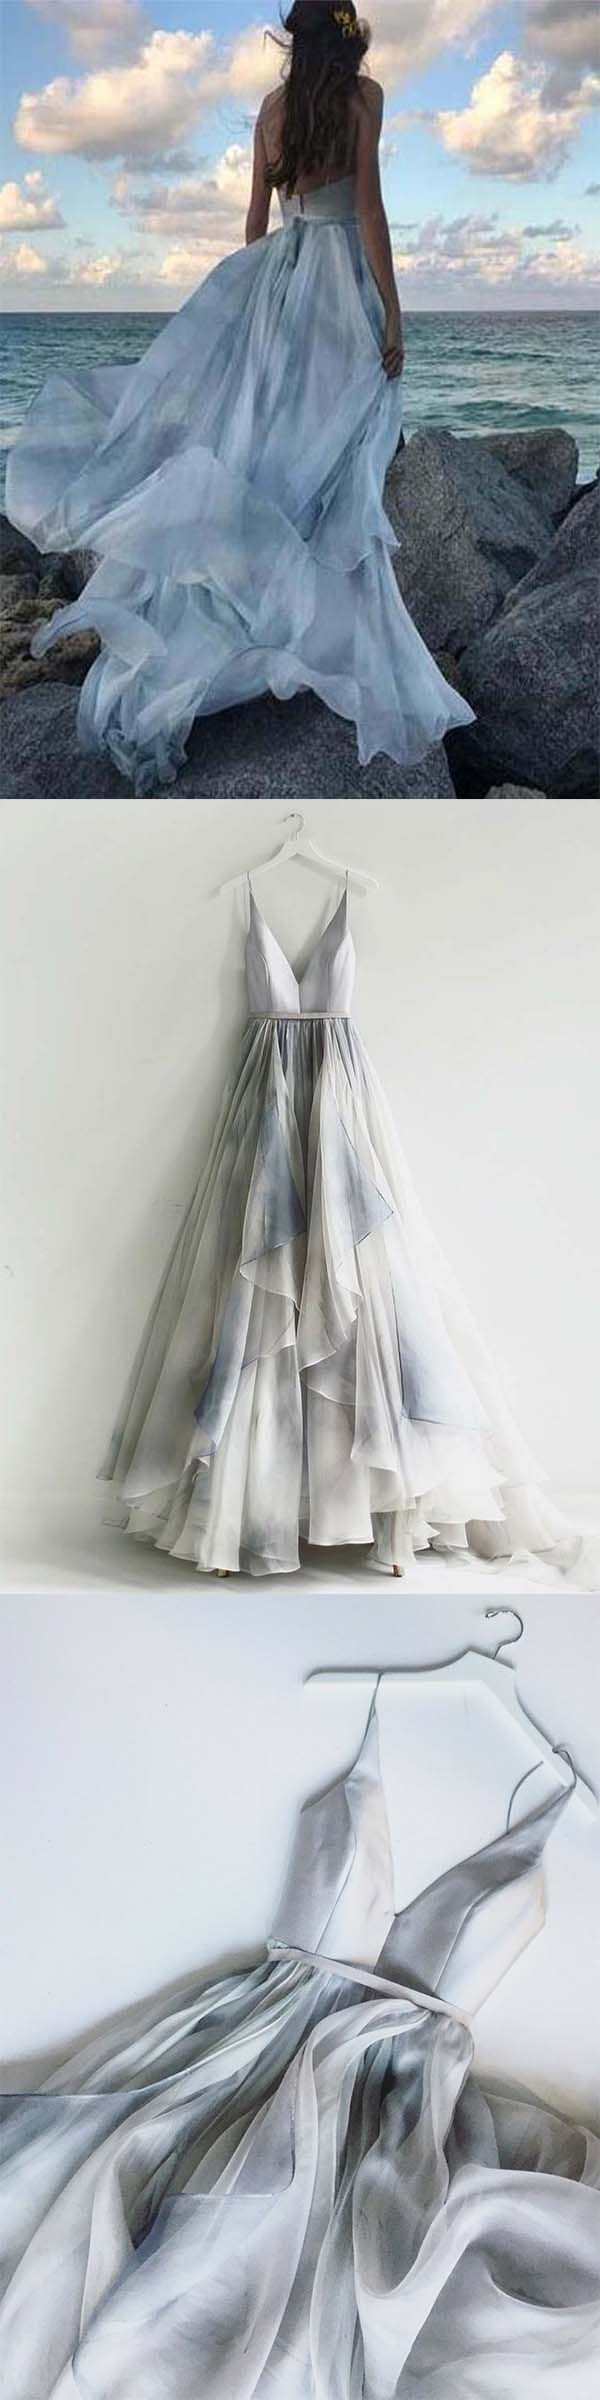 cde1580c1529 Unique A-Line Spaghetti Straps Backless Silver Prom Dress , 2018 Fashion  Long Party Dress with Ruffles